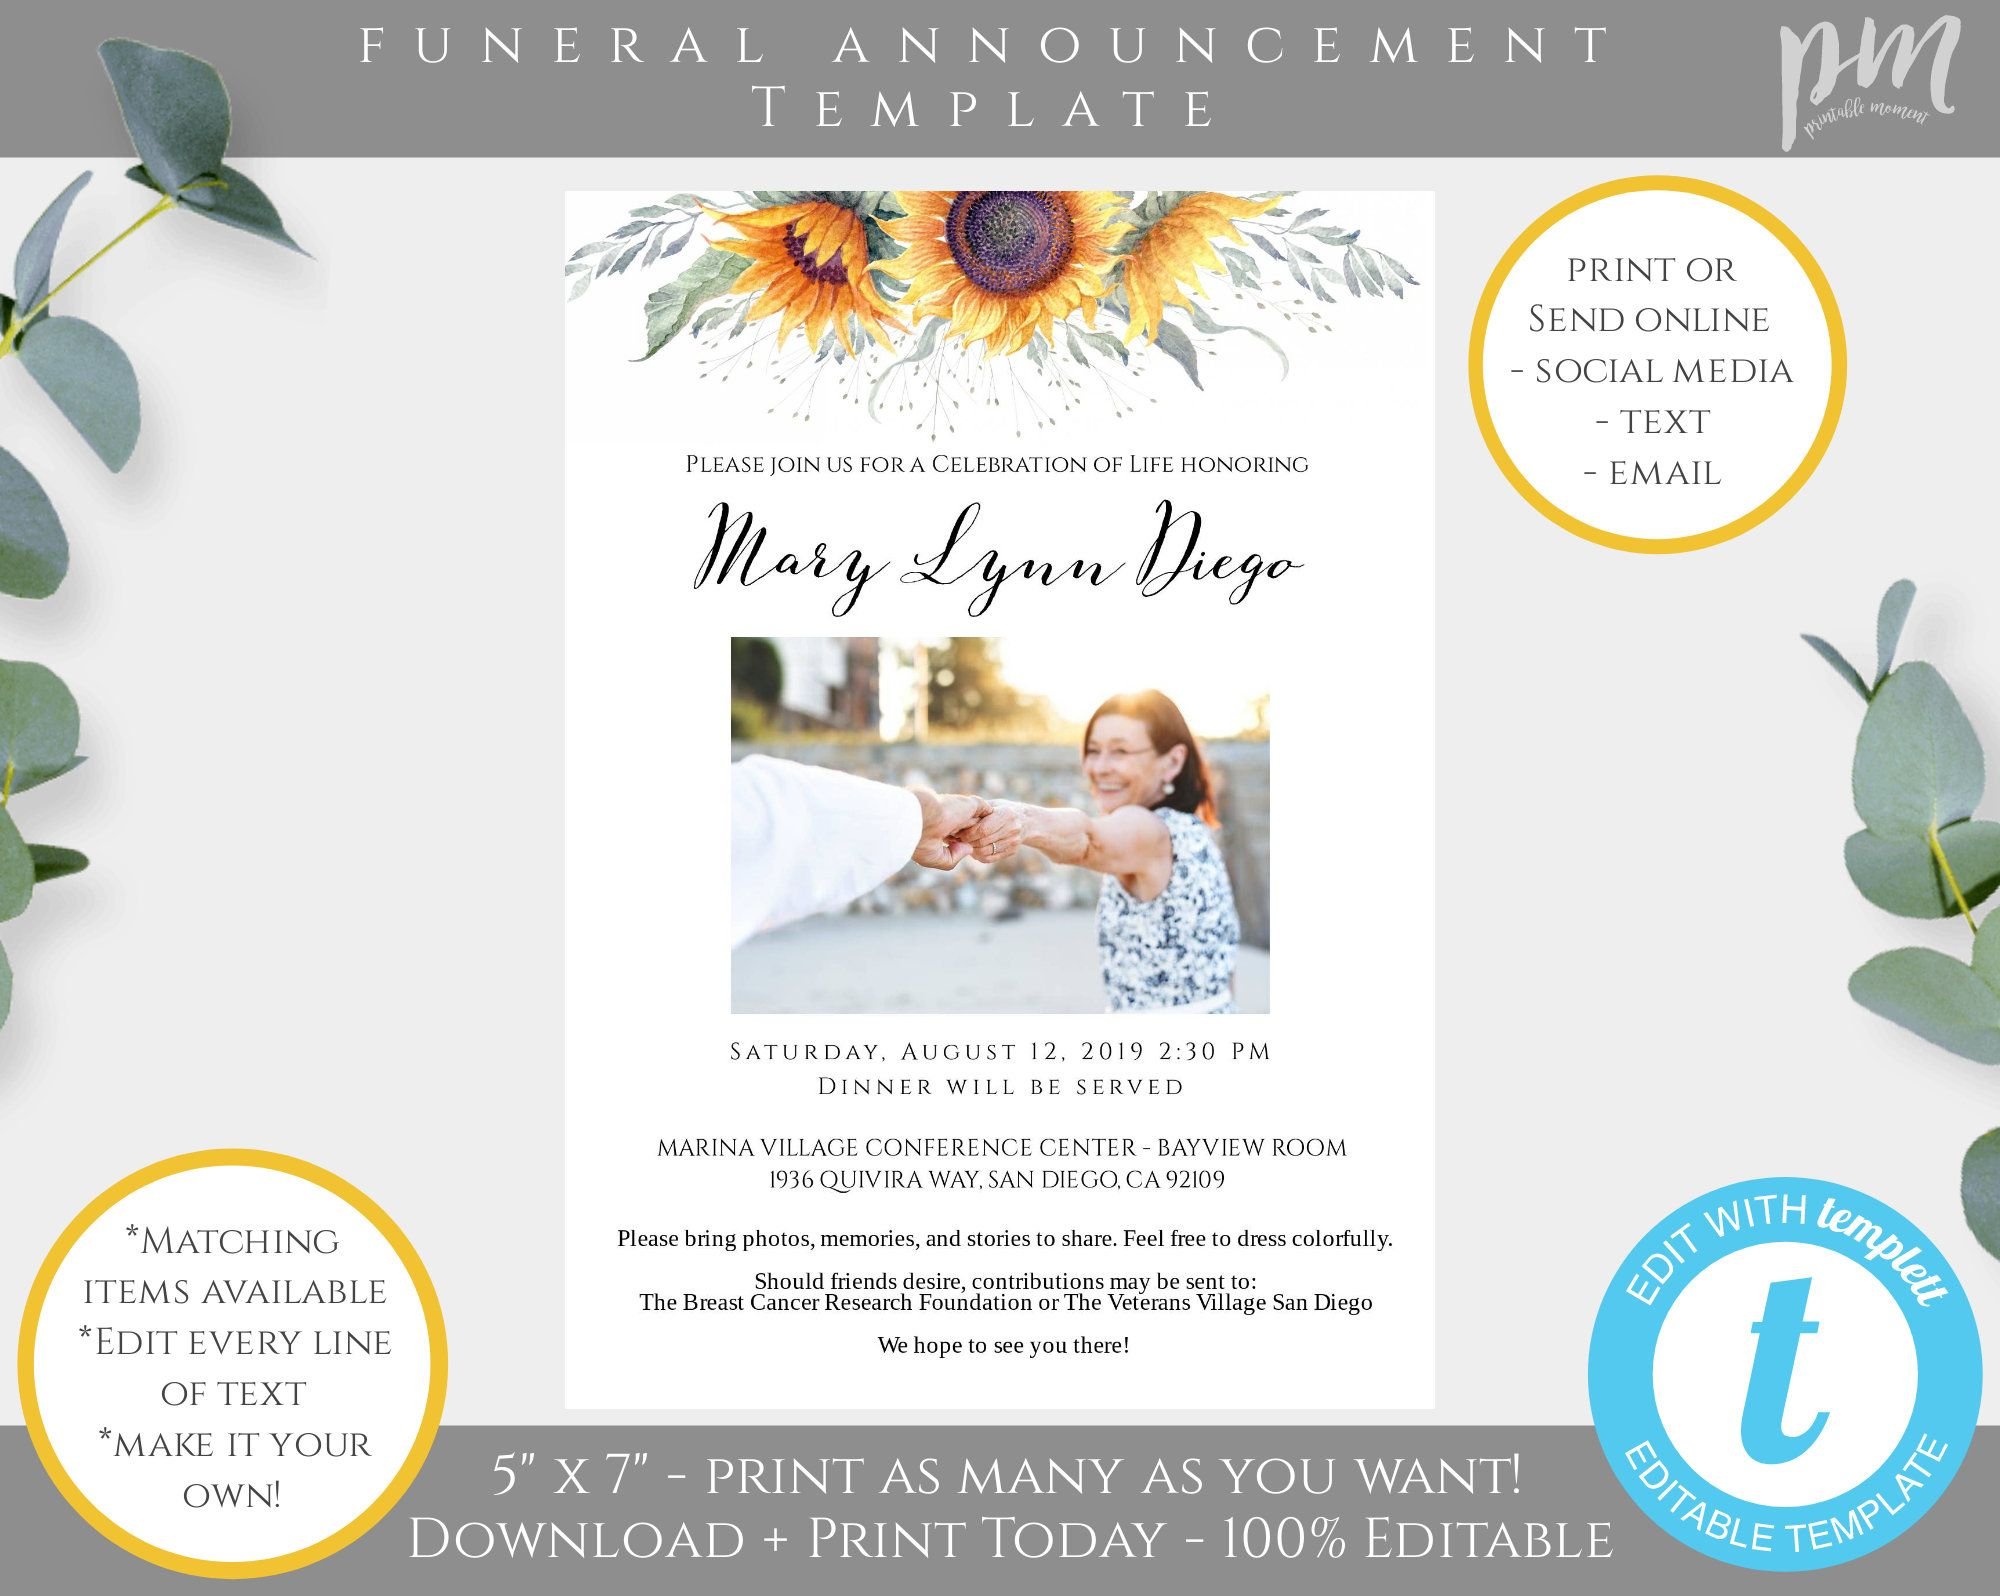 Printable Funeral Template Instant Download Funeral Program Template In Loving Memory Editable Obituary Sunflower Funeral Template SFB